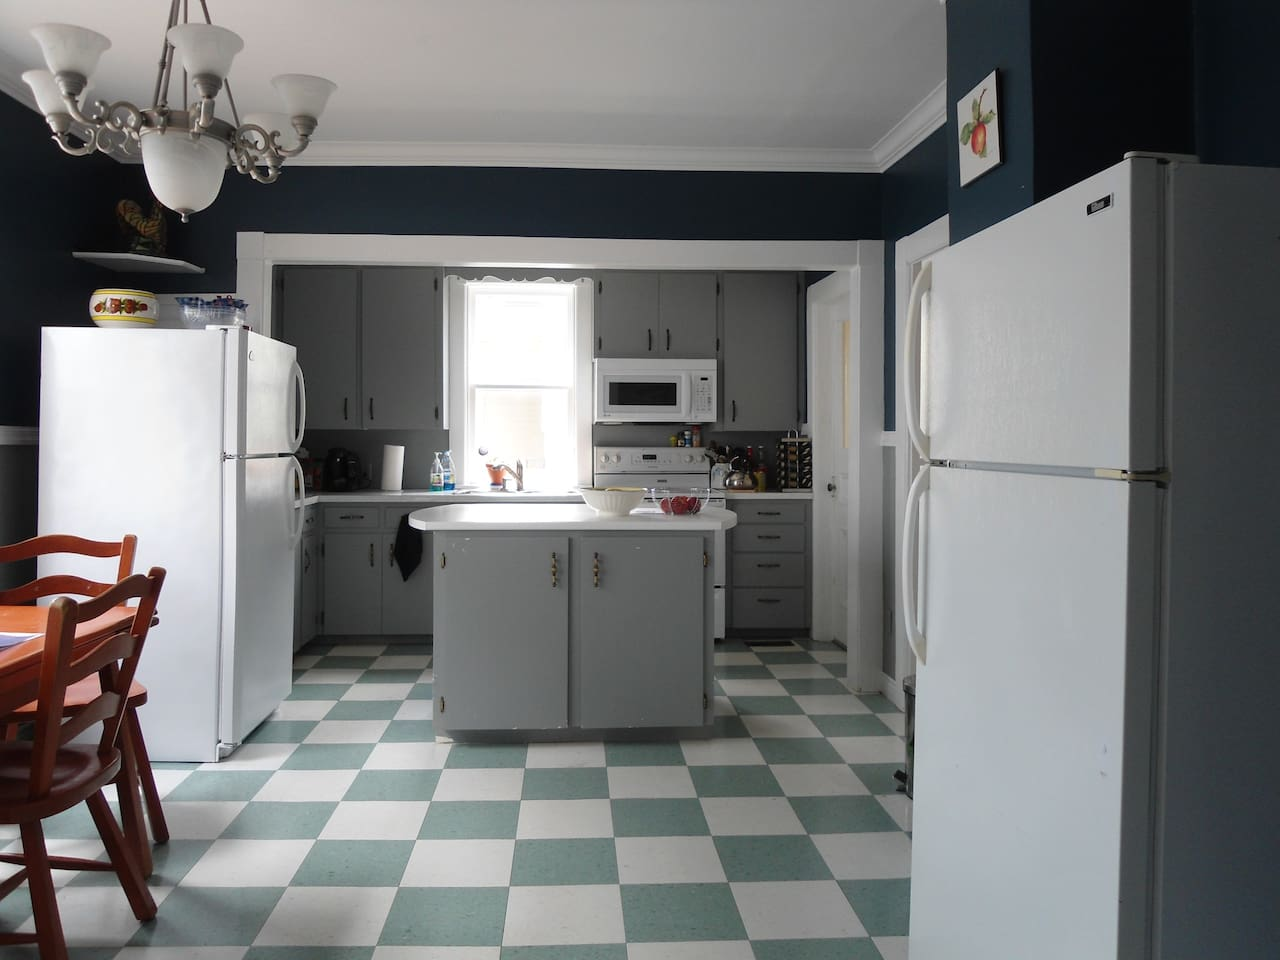 Full kitchen. Microwave,toaster,  stove,  space in separate fridge, dishes and dishwasher, pots and pans.